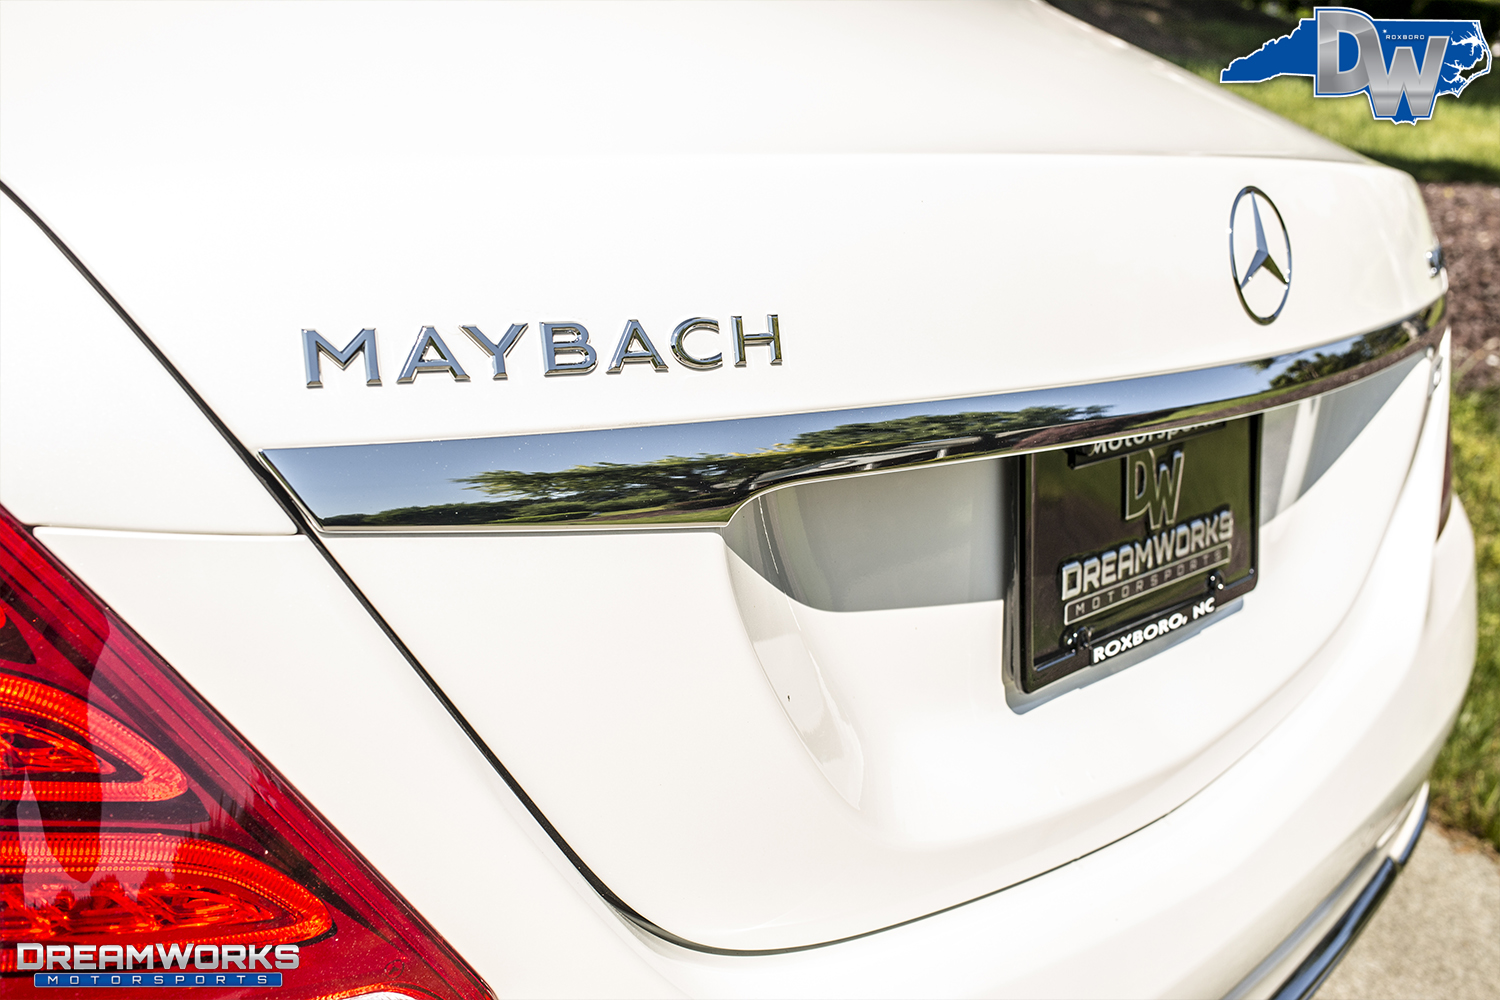 Maybach-S600-Chris-Wilcox-Dreamworks-Motorsports-8.jpg